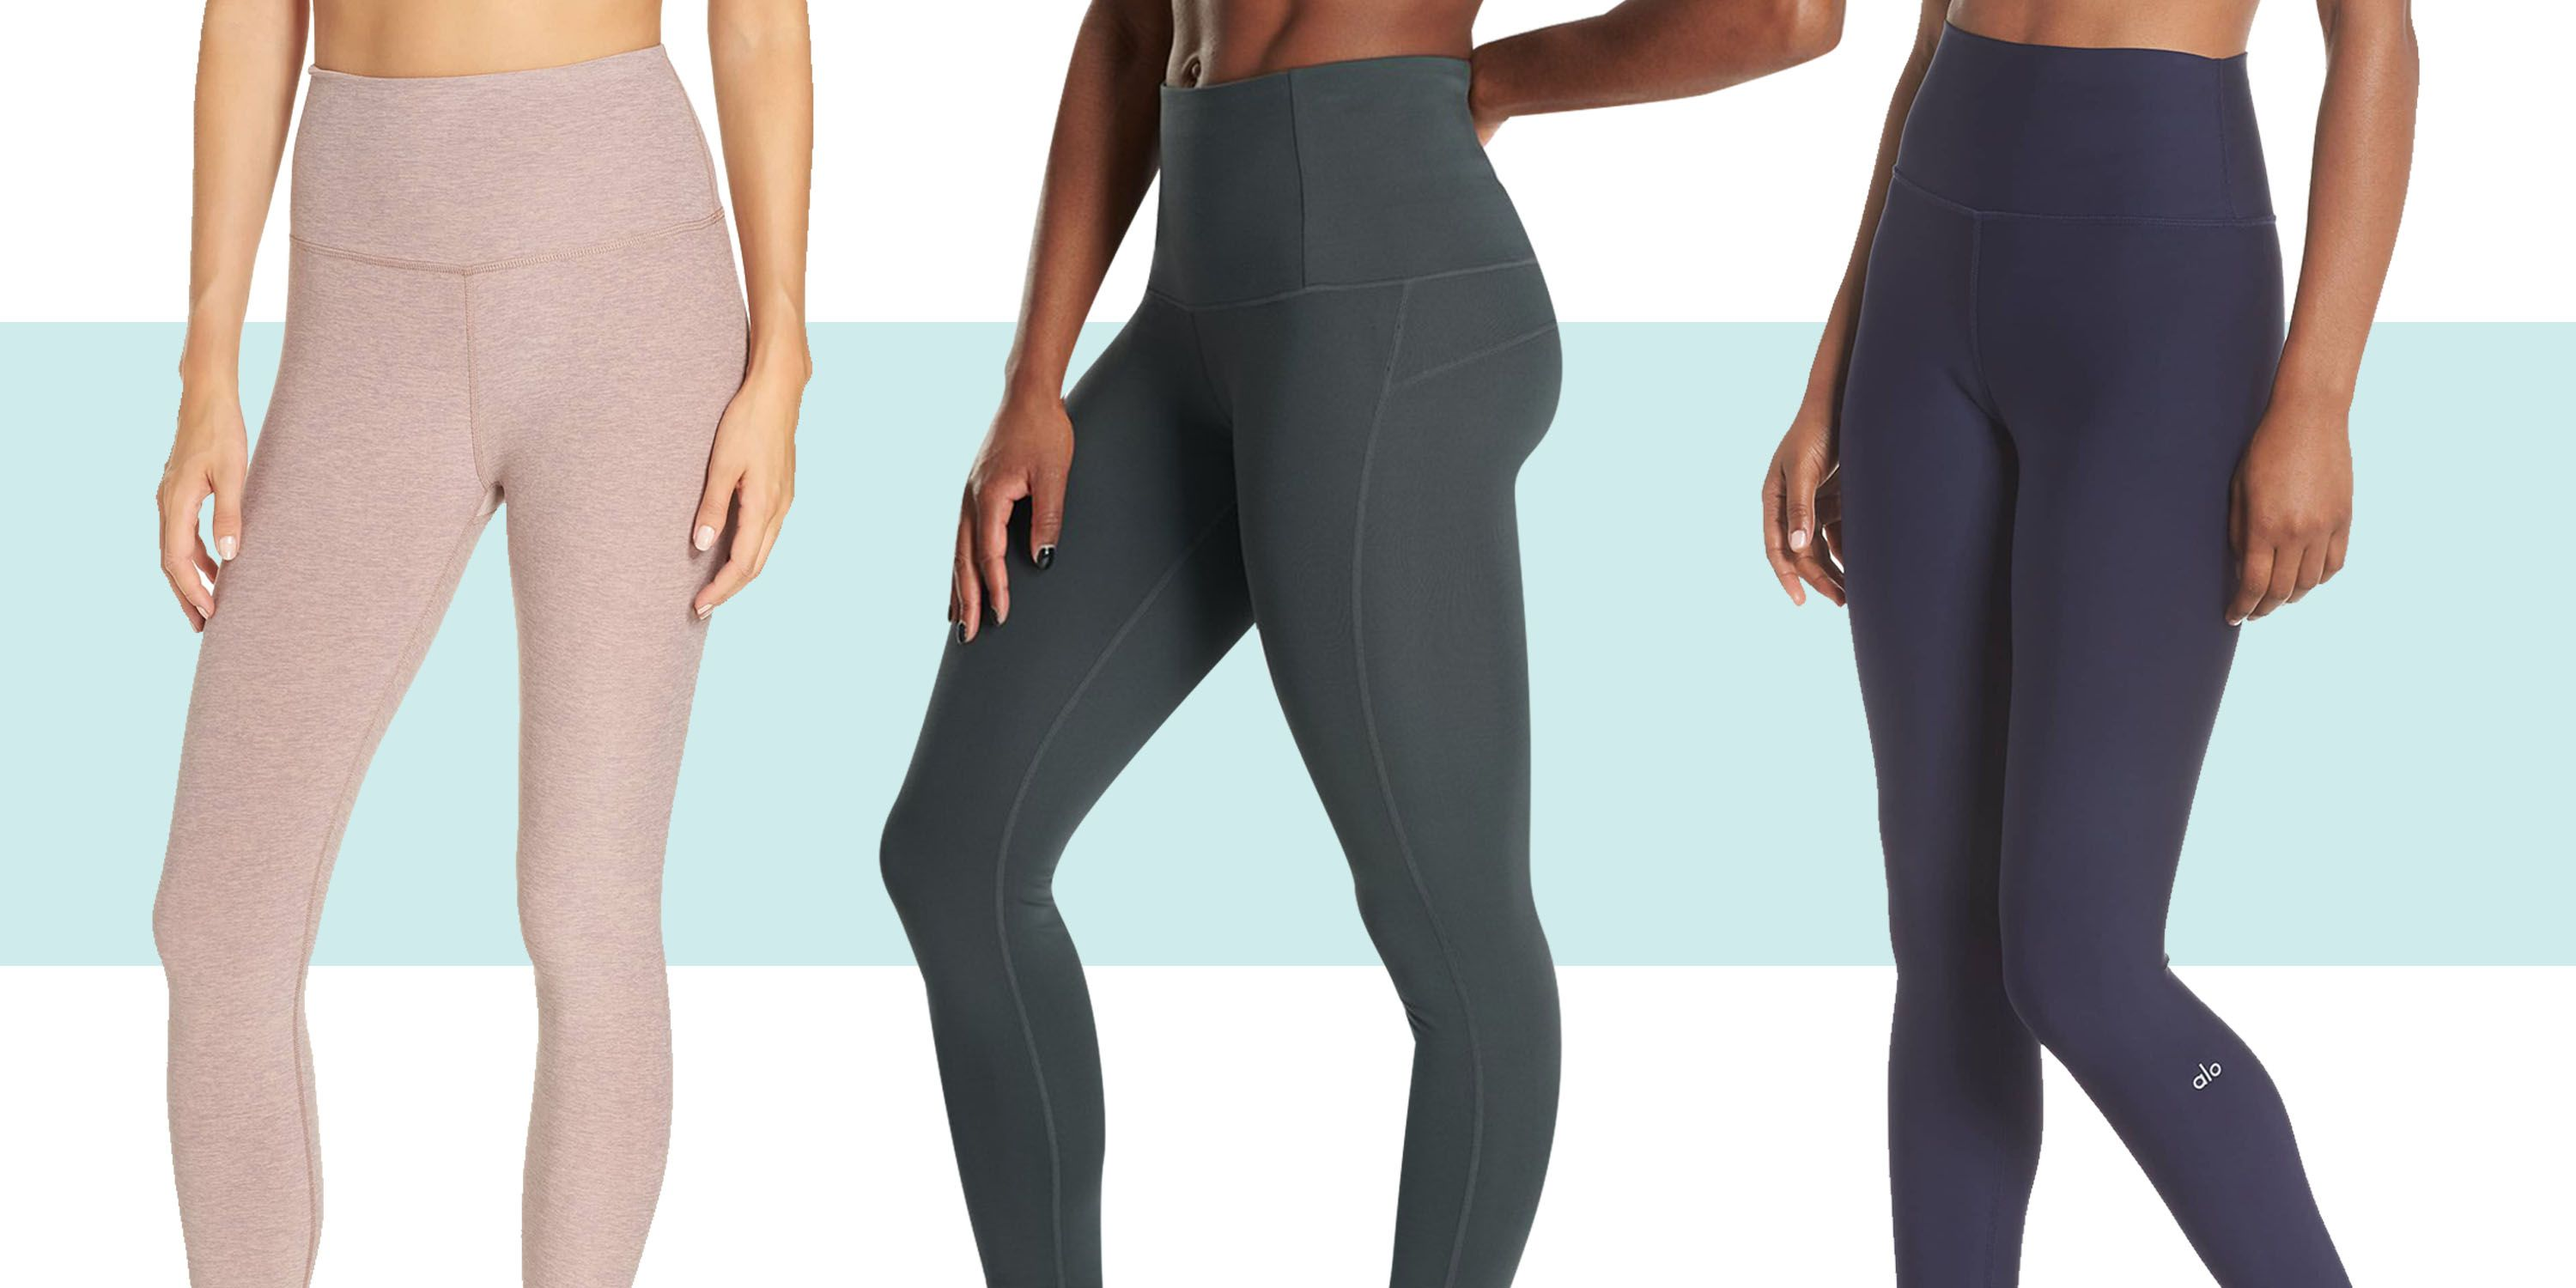 8596fc2077ec5 The Best High-Waisted Leggings for Every Workout, According to Trainers